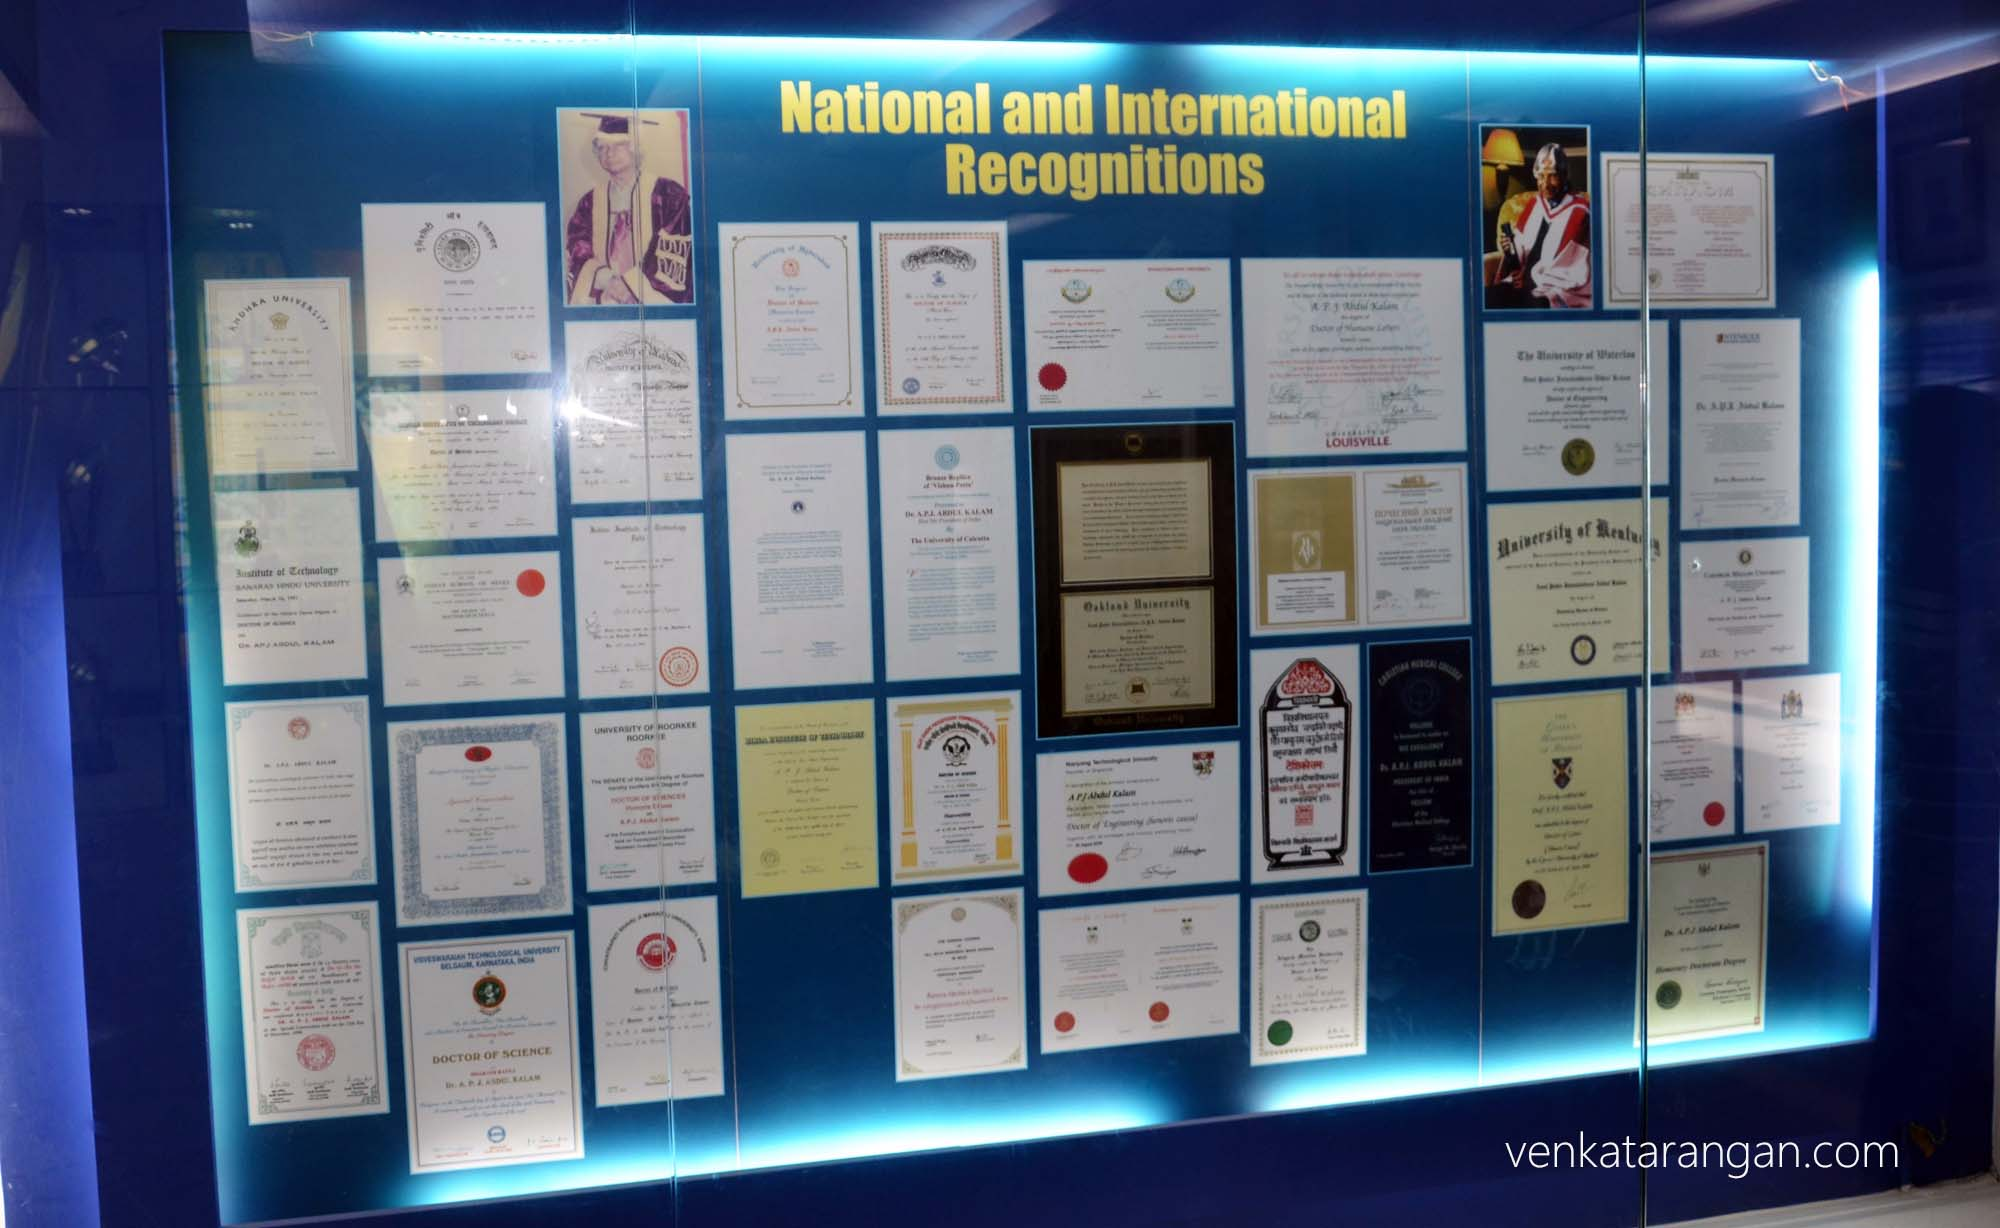 National and International Recognitions given to Dr Kalam